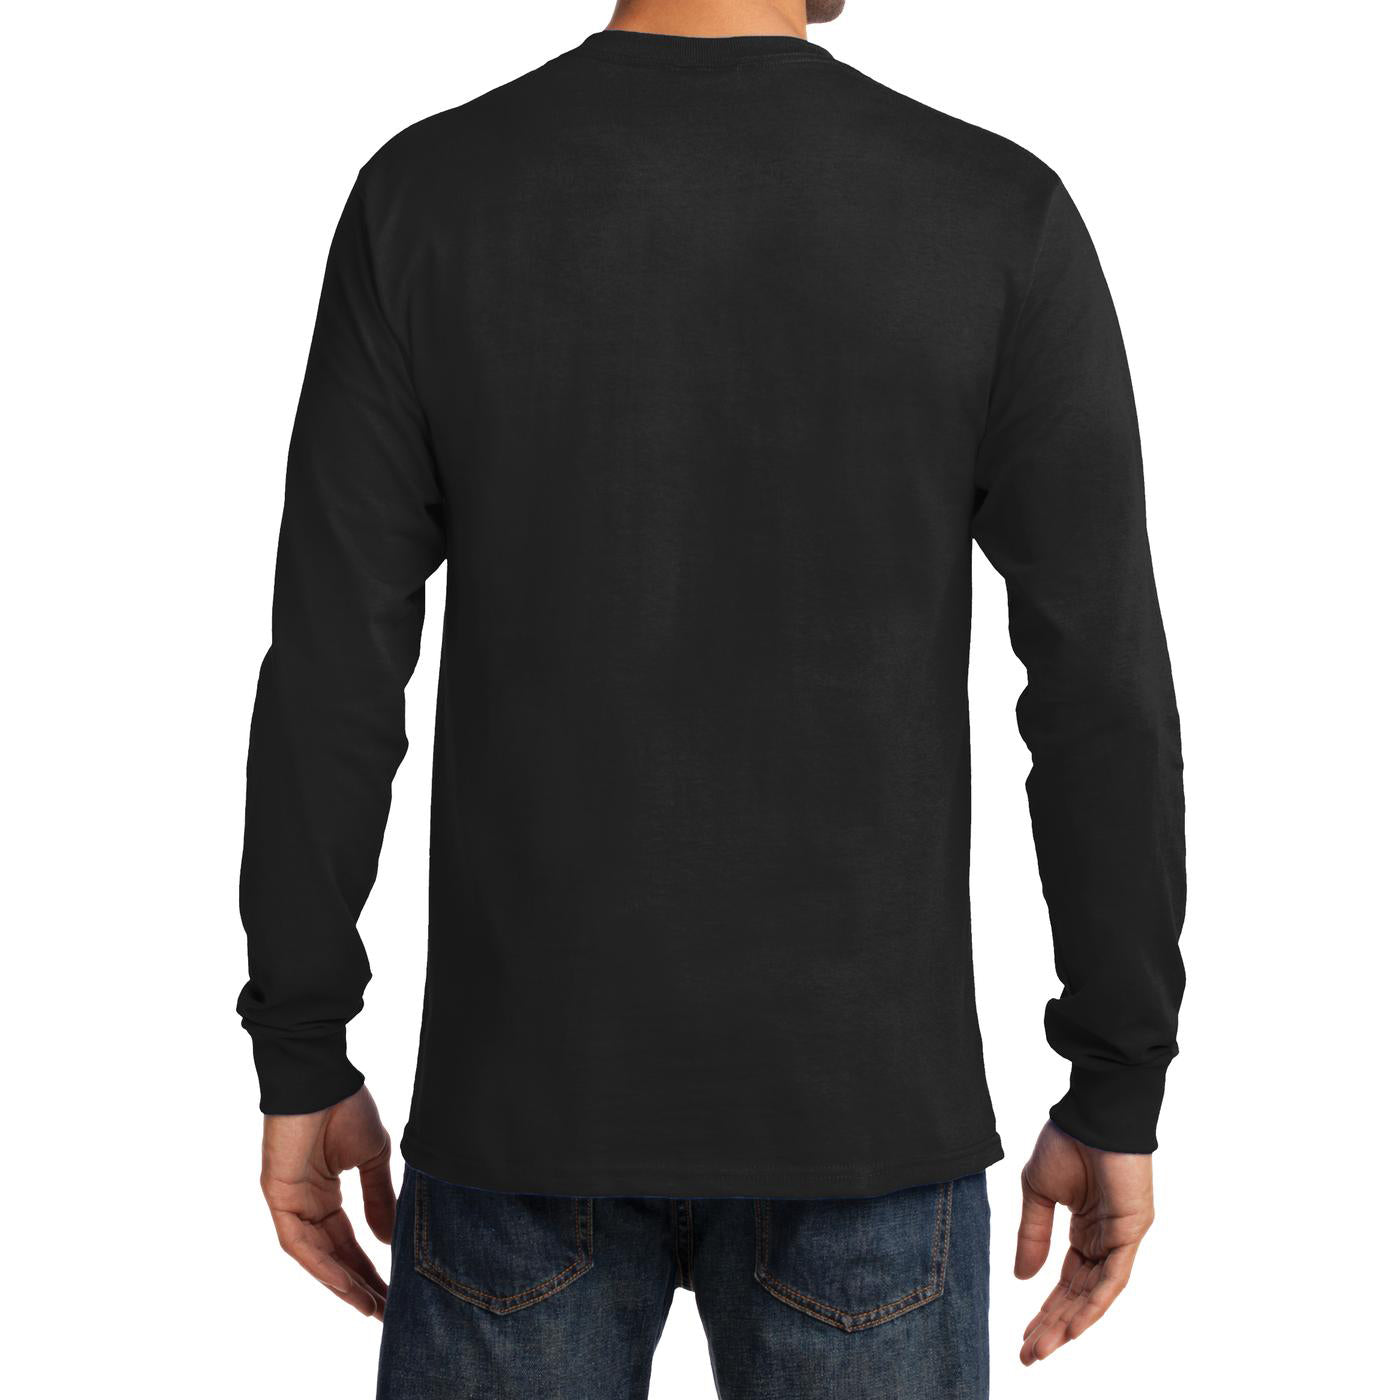 Men's Long Sleeve Essential Tee - Jet Black - Back